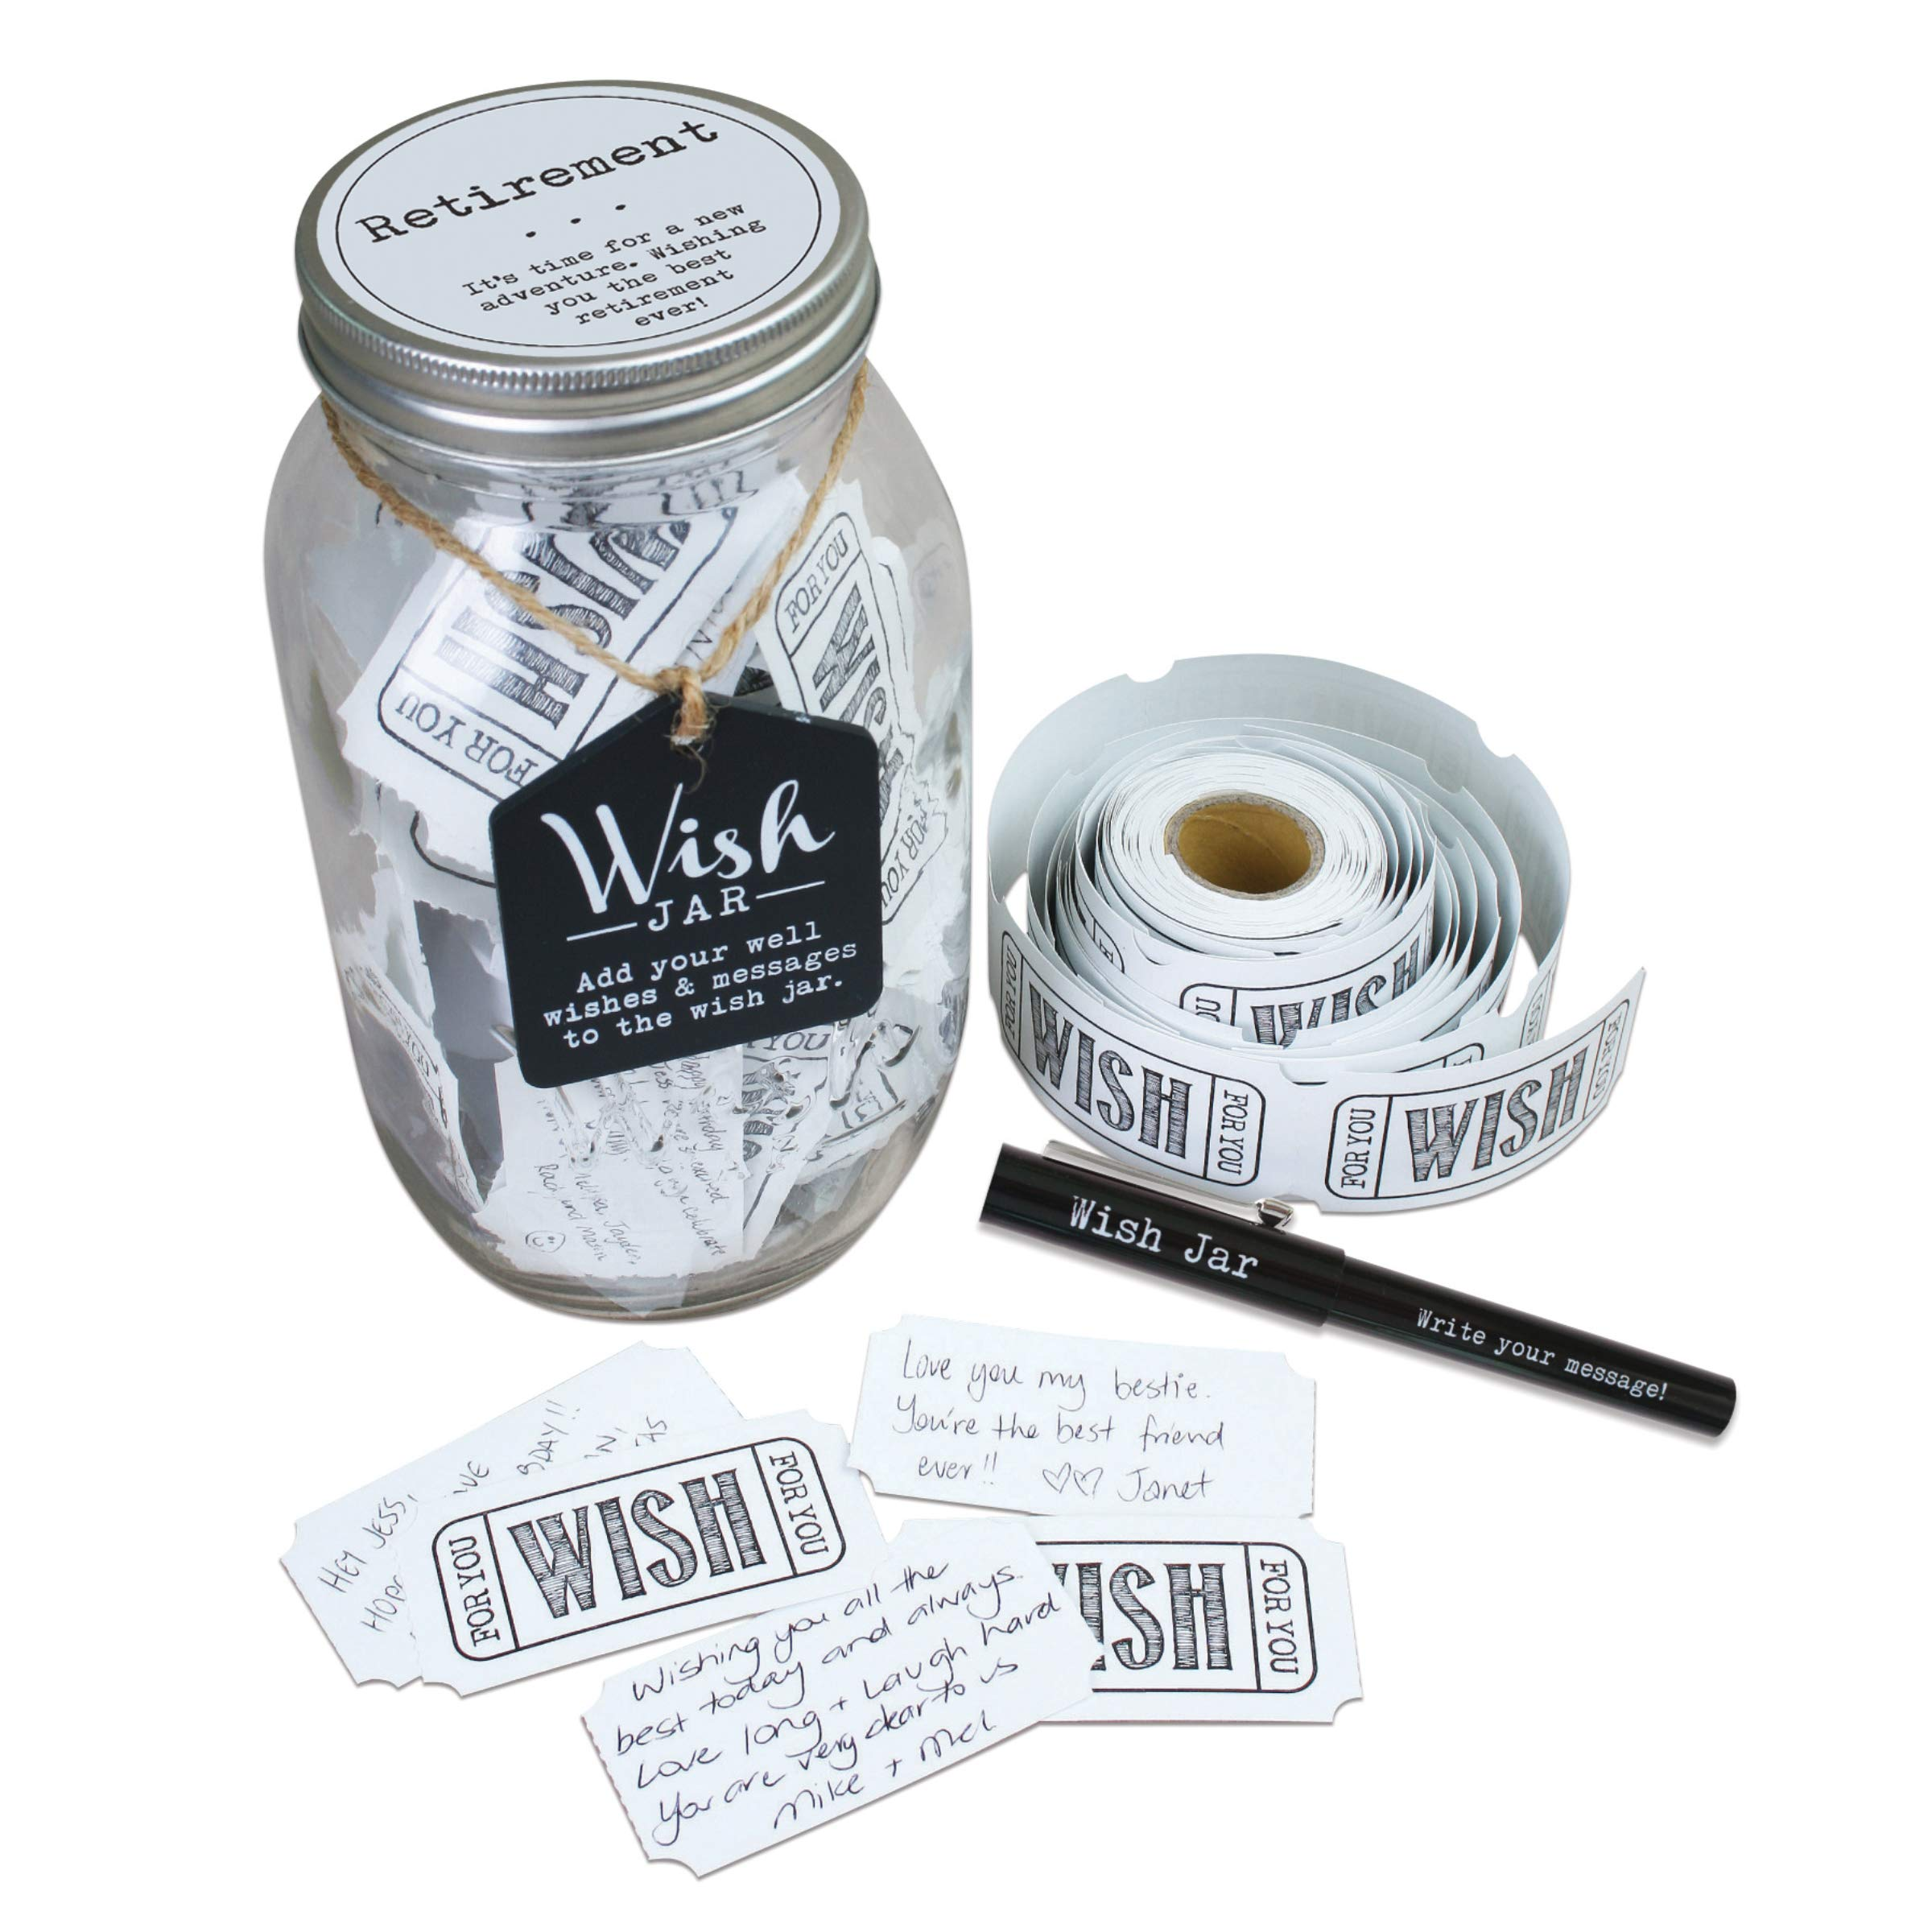 Top Shelf Retirement Wish Jar ; Personalized Gift for Men and Women ; Unique and Thoughtful Gift Ideas for Mom, Dad, Husband, Wife, Coworker, or Best Friend ; Kit Comes with 100 Tickets, Pen, and Lid by TOP SHELF